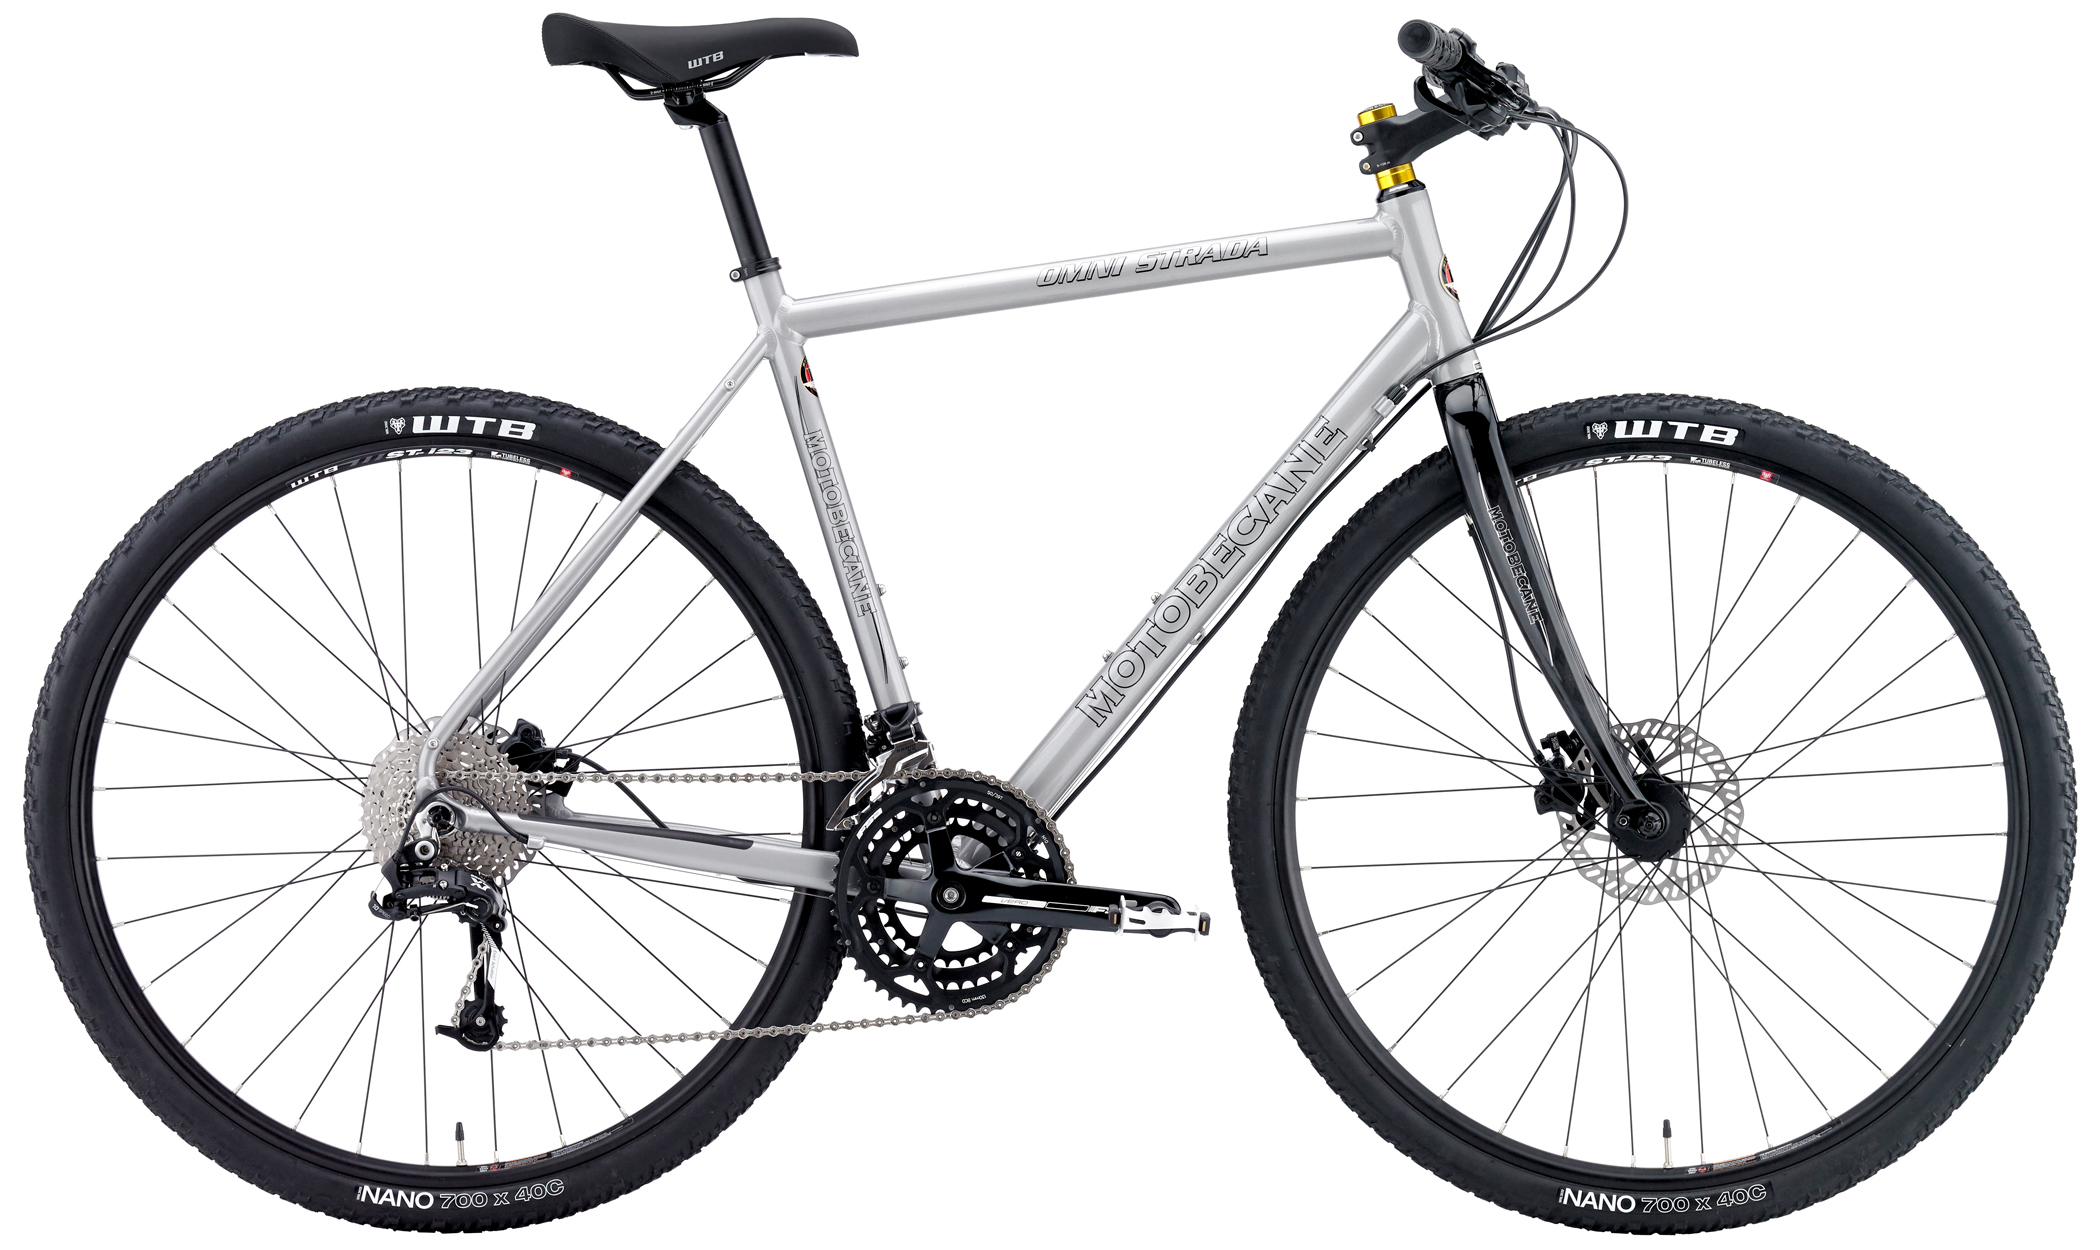 OMNI STRADA TRAIL - ALUMINUM FLAT-BAR GRAVEL BIKE